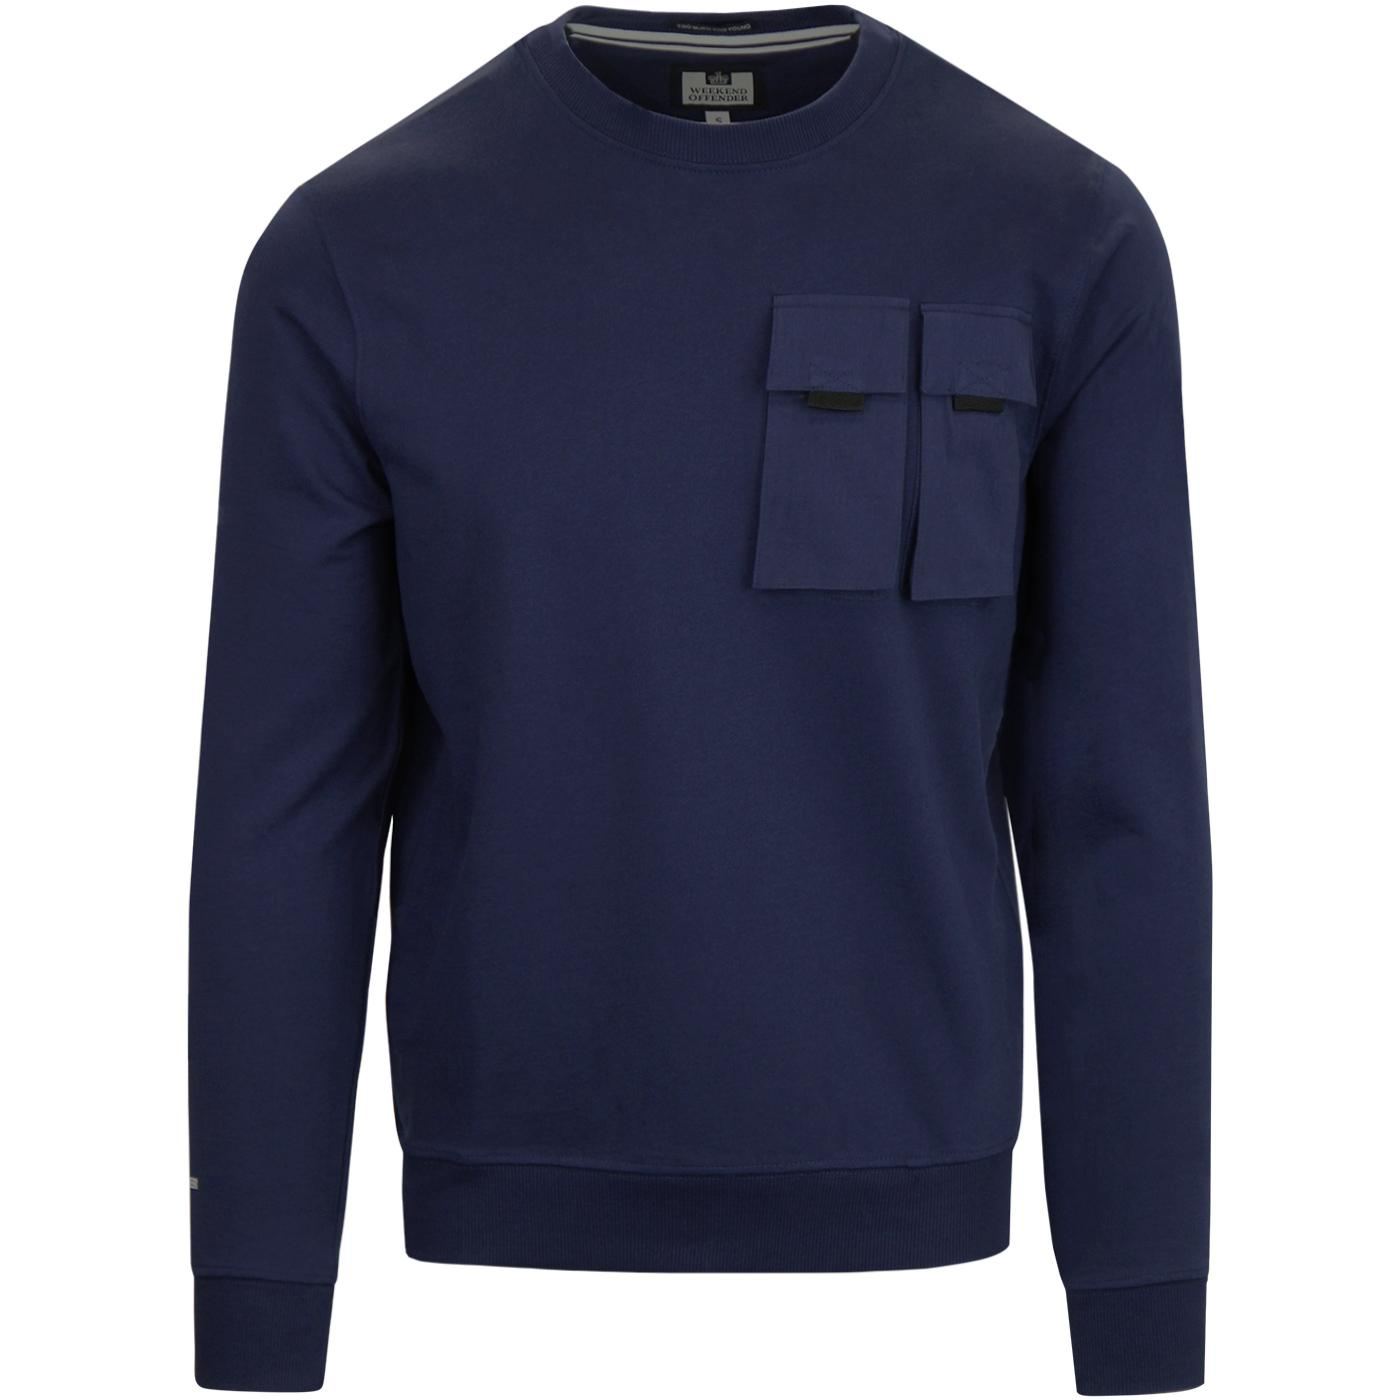 Alfonso WEEKEND OFFENDER Retro Pocket Sweatshirt